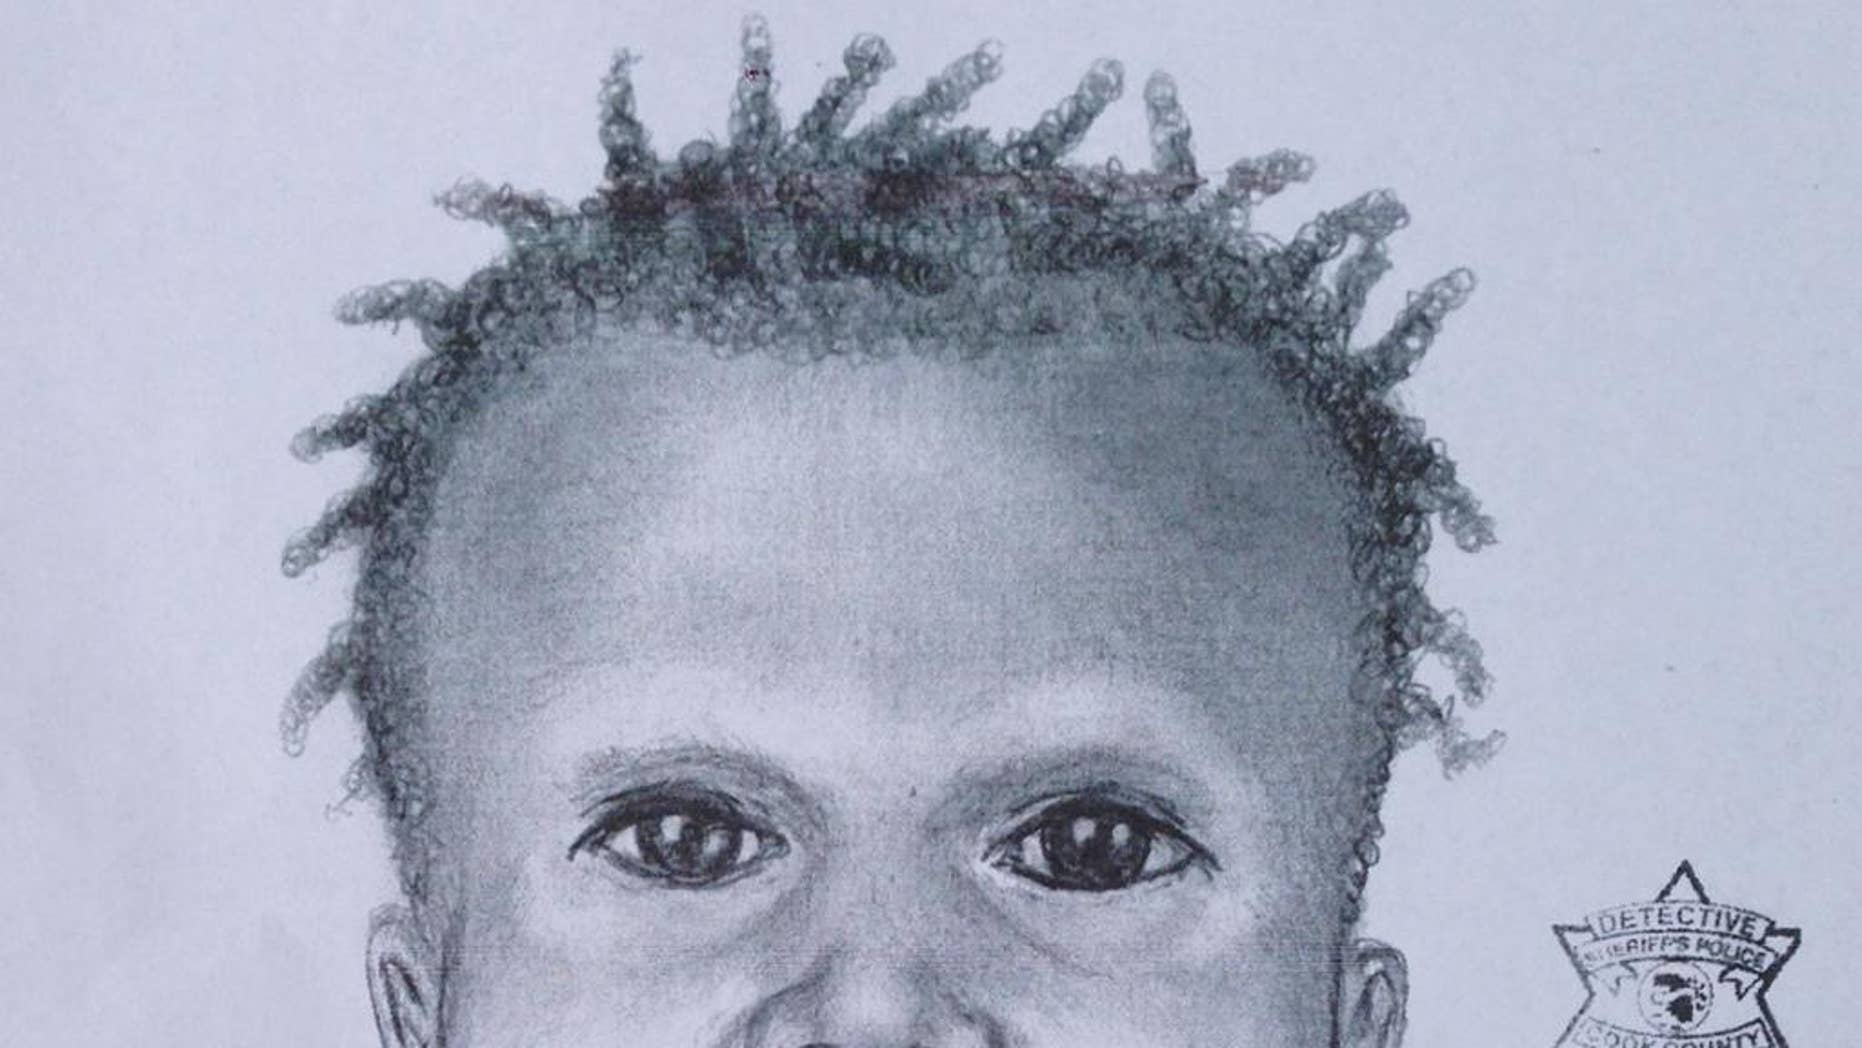 This composite sketch released Thursday, Sept. 10, 2015, by the Chicago Police Department shows a toddler whose dismembered remains were found in a lagoon in Garfield Park.(Chicago Police Department via AP)